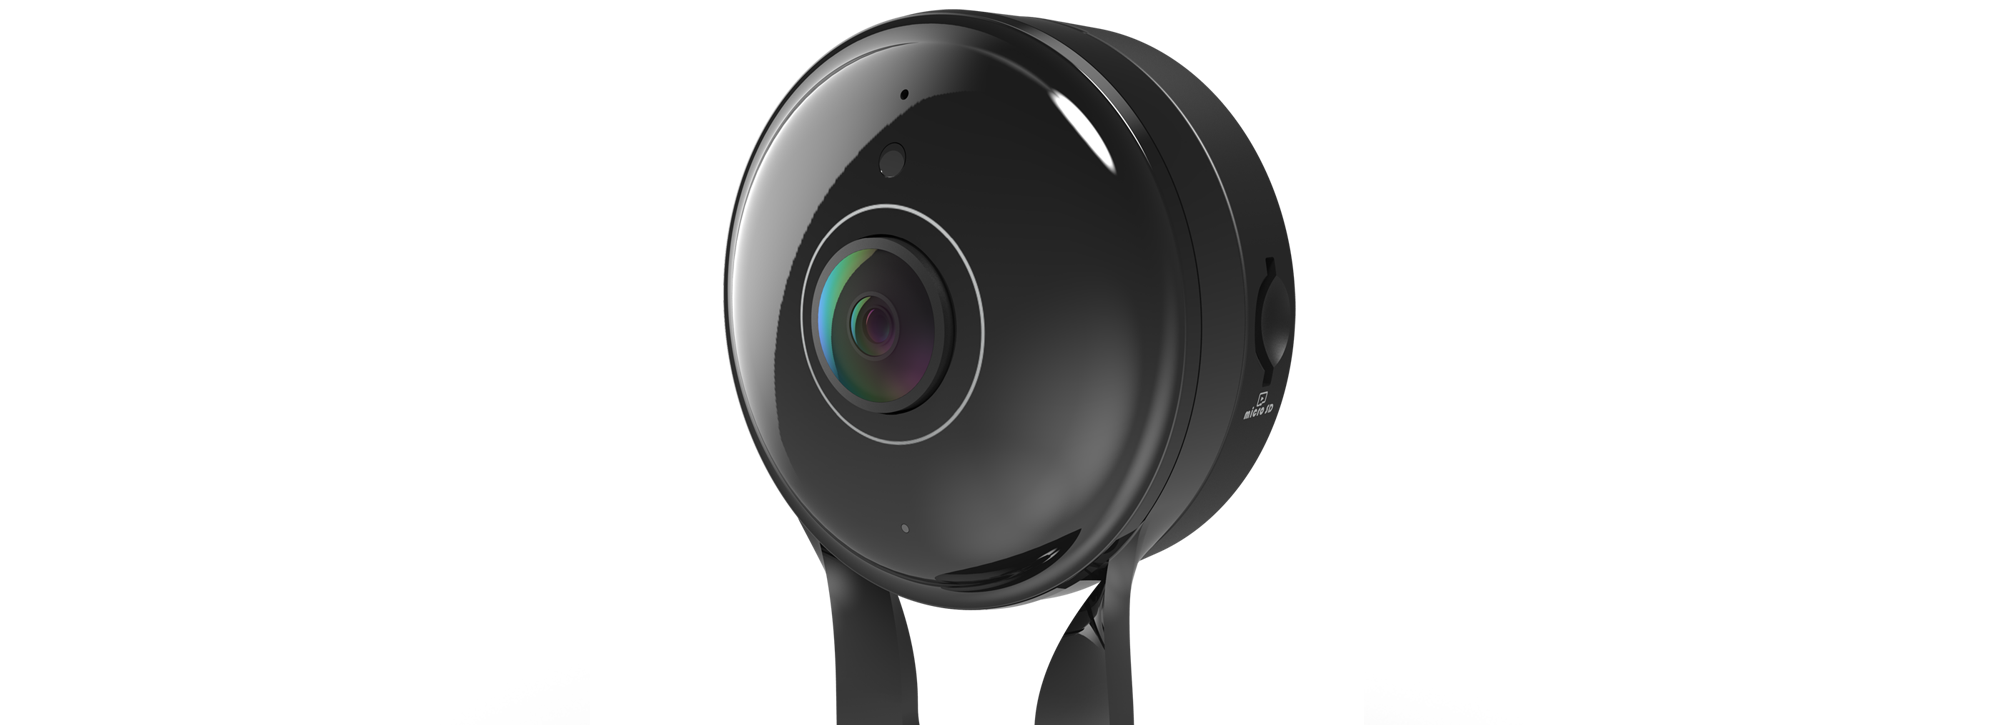 Side of the DCS-2530L Wide Eye Full HD 180° Panoramic Camera